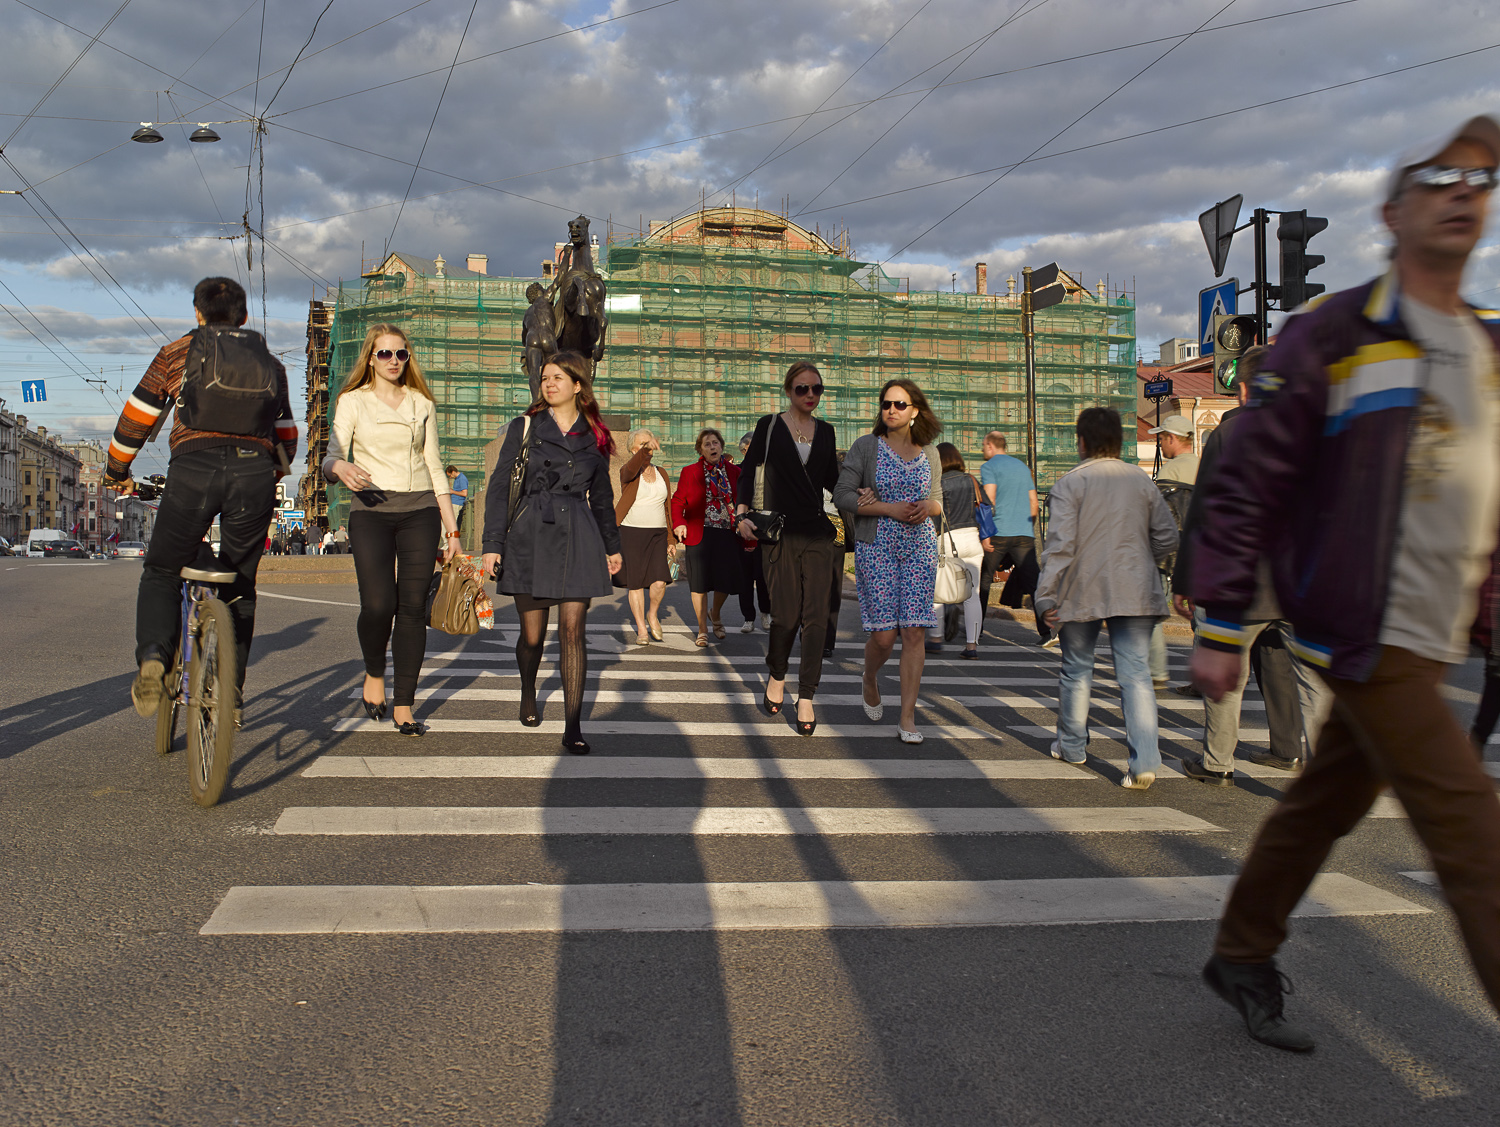 Crossing - Saint Petersburg, 2013